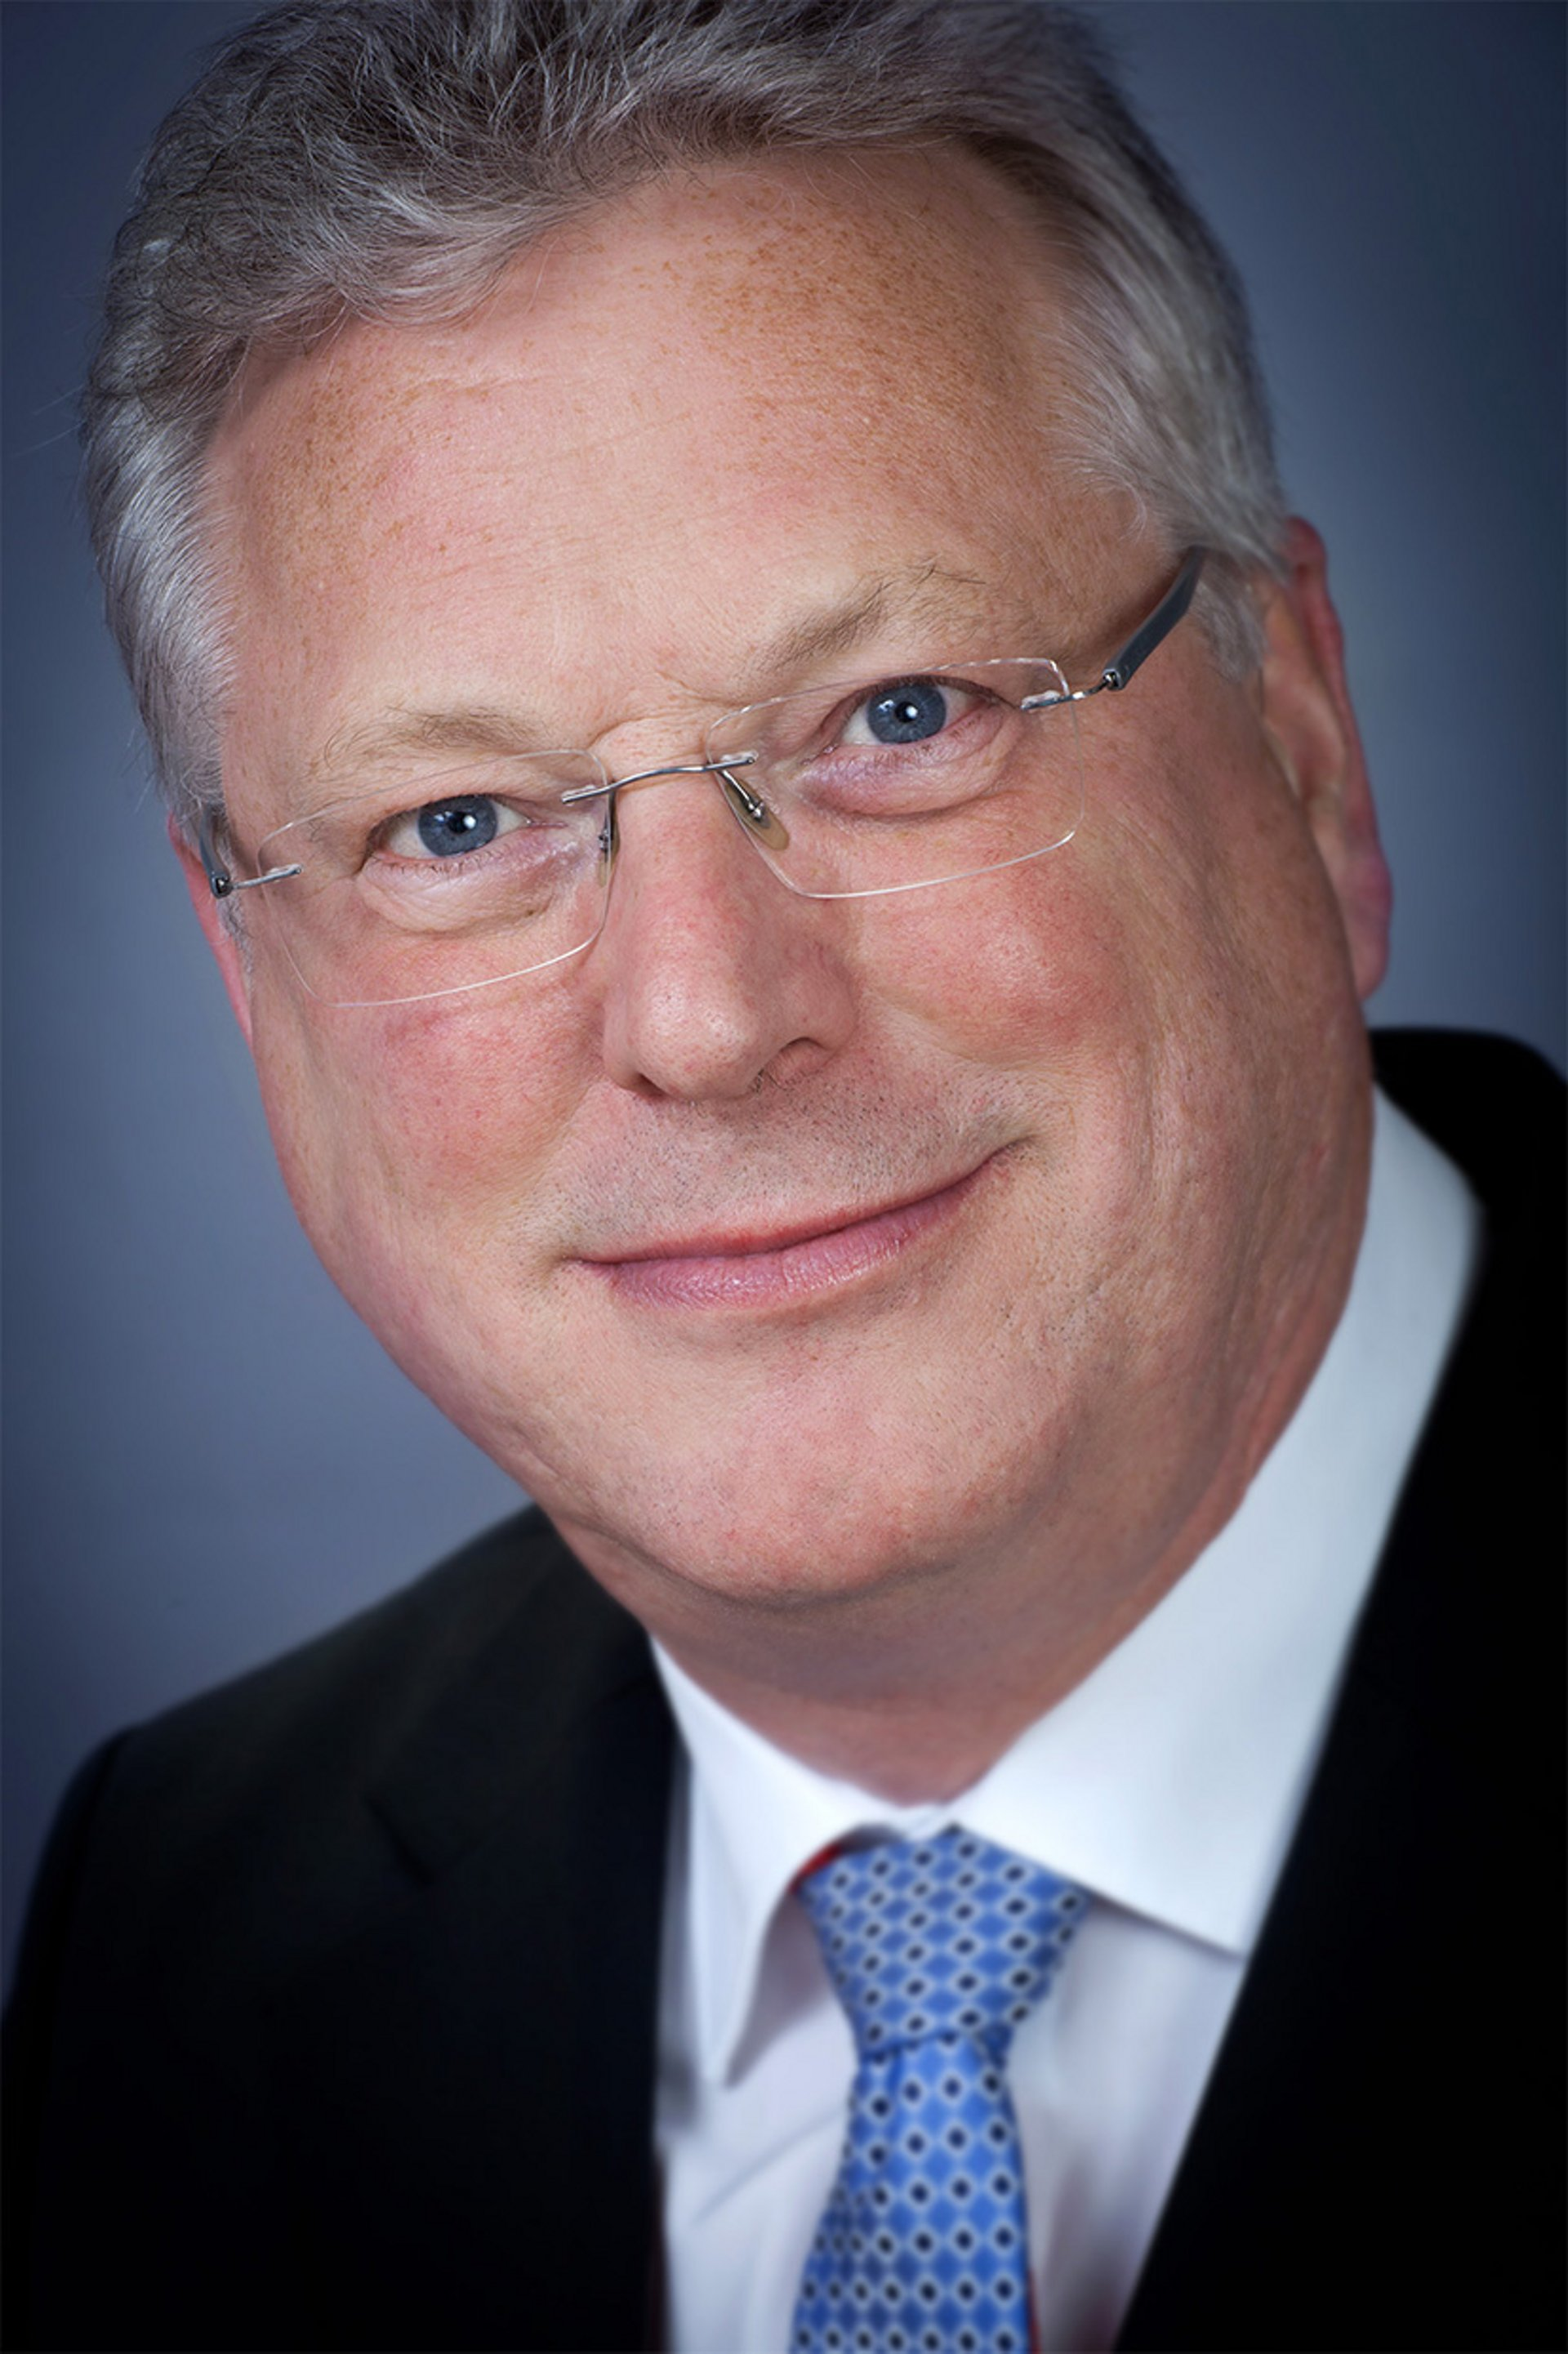 Michael Gerhards is new Head of CyberSecurity Germany